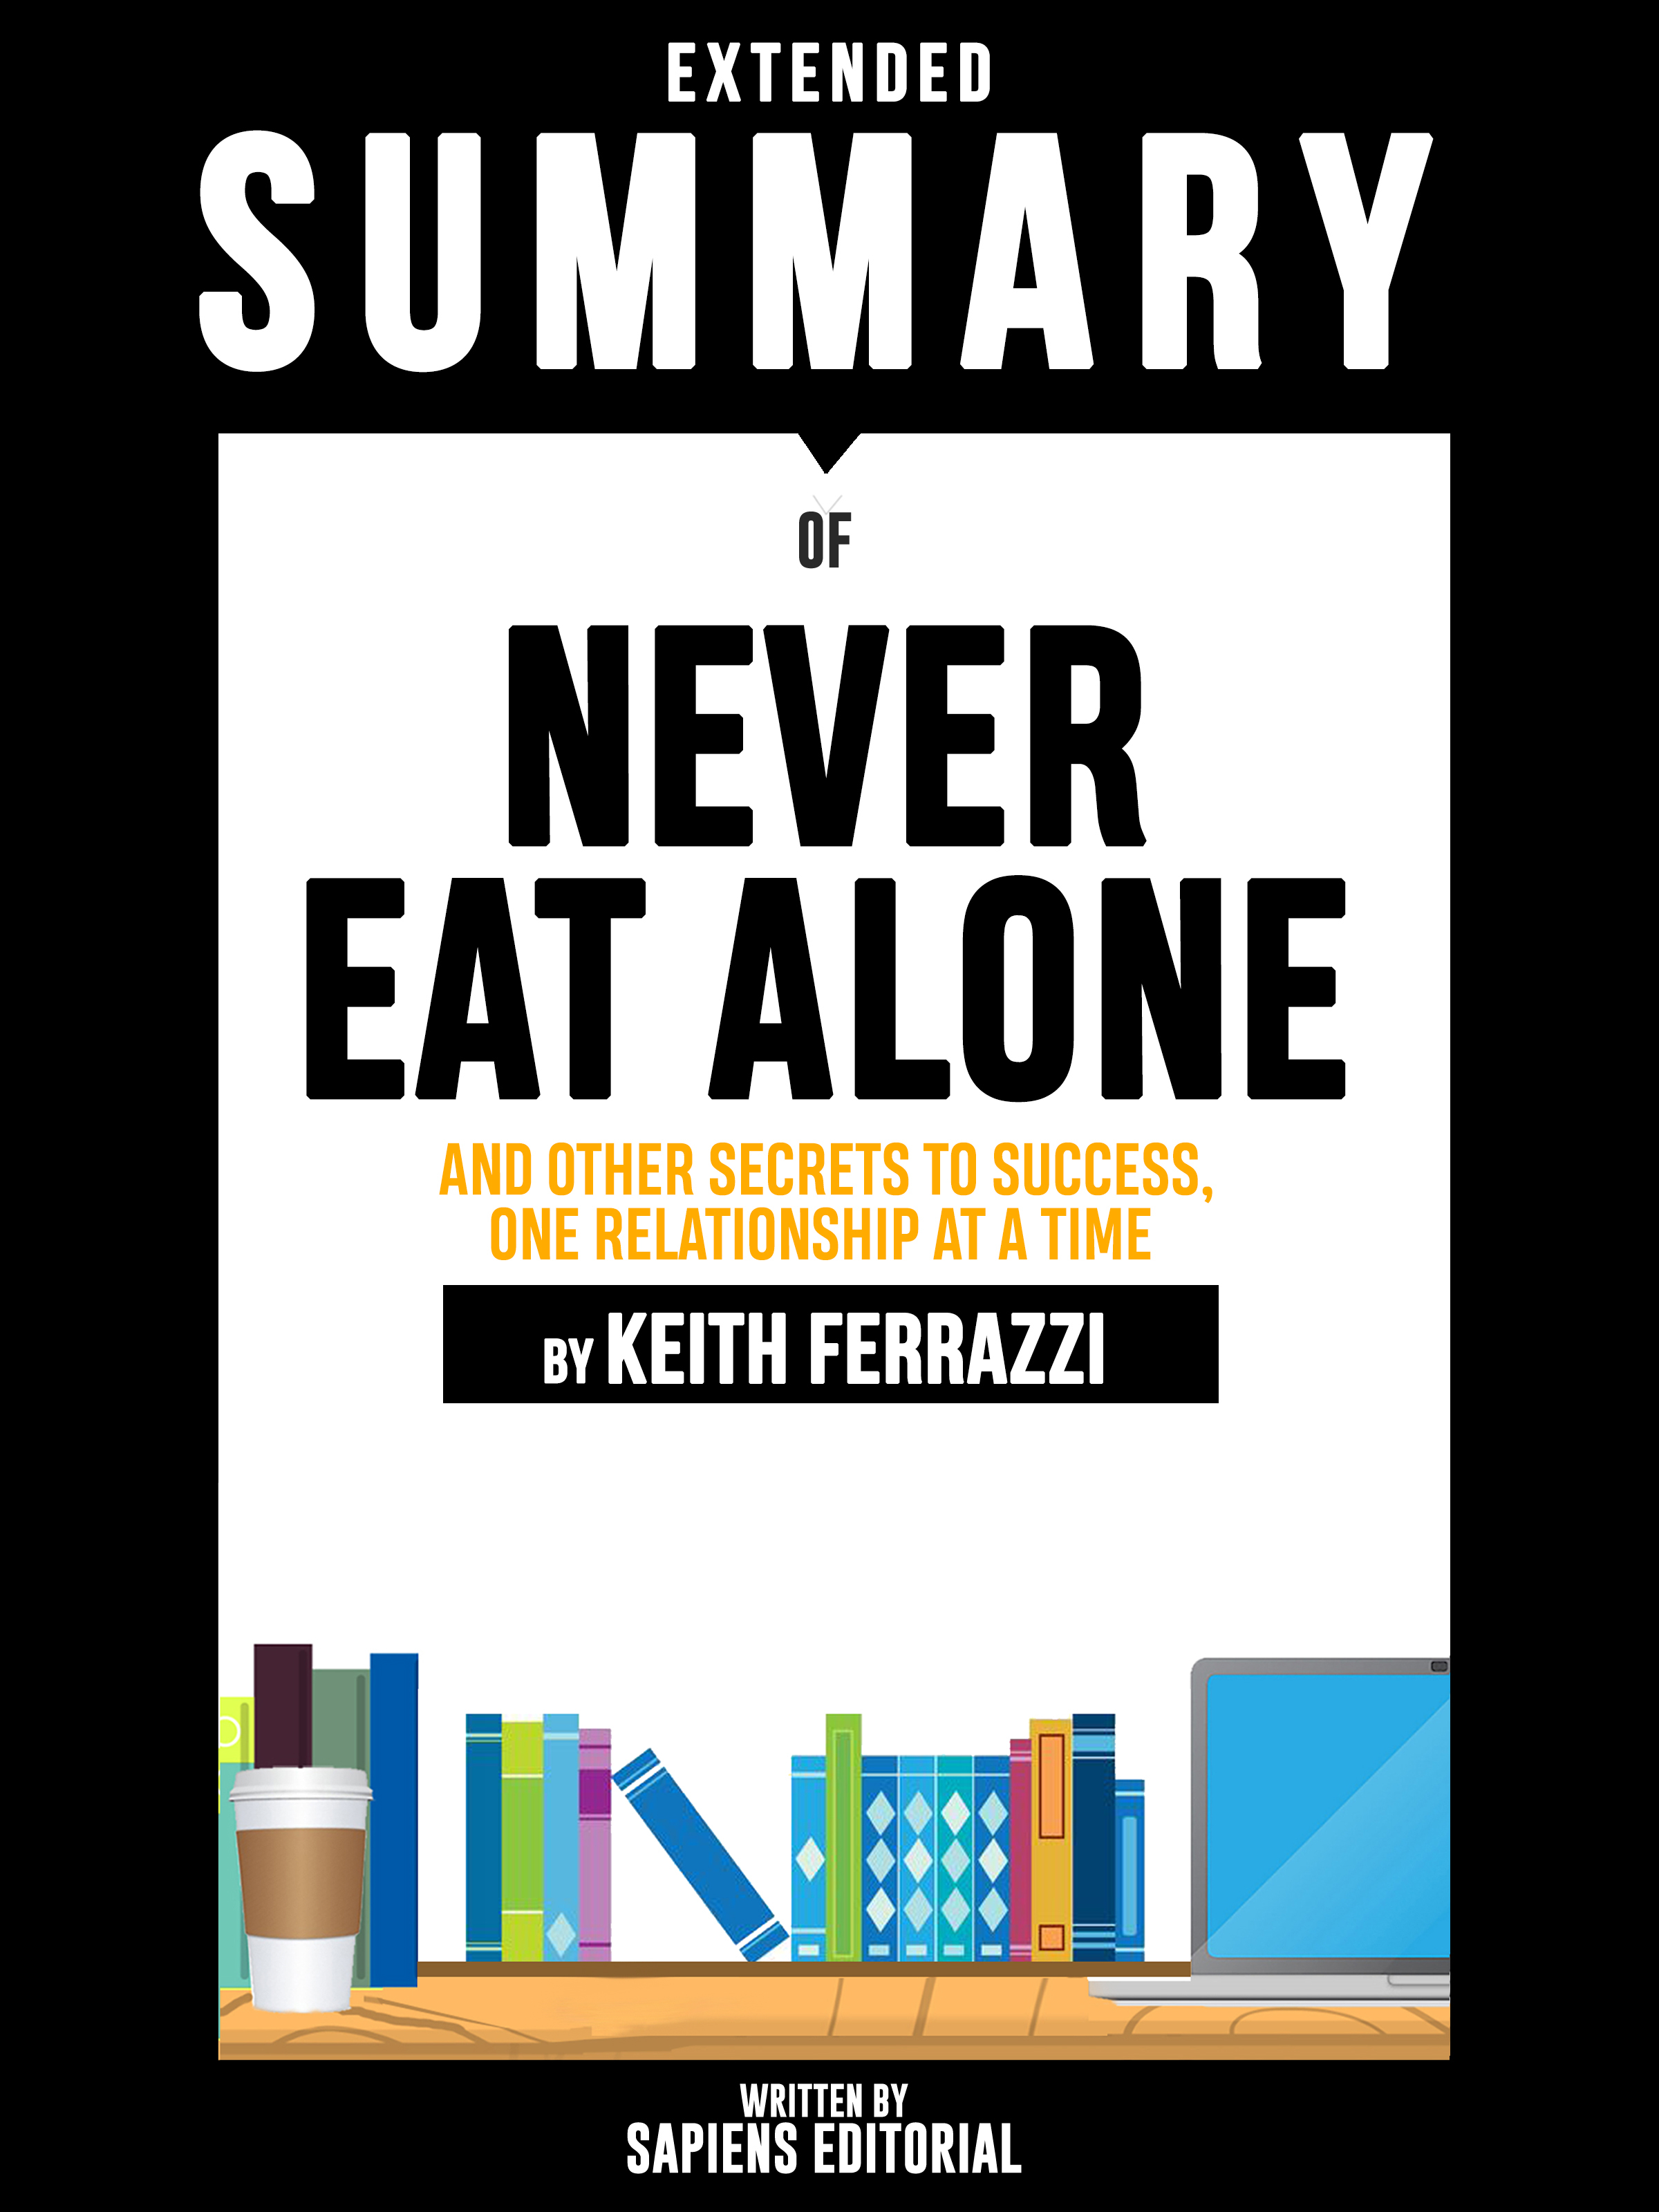 Sapiens Editorial Extended Summary Of Never Eat Alone: And Other Secrets To Success, One Relationship At A Time - By Keith Ferrazzi abbey beathan summary of give and take why helping others drives our success by adam m grant ph d